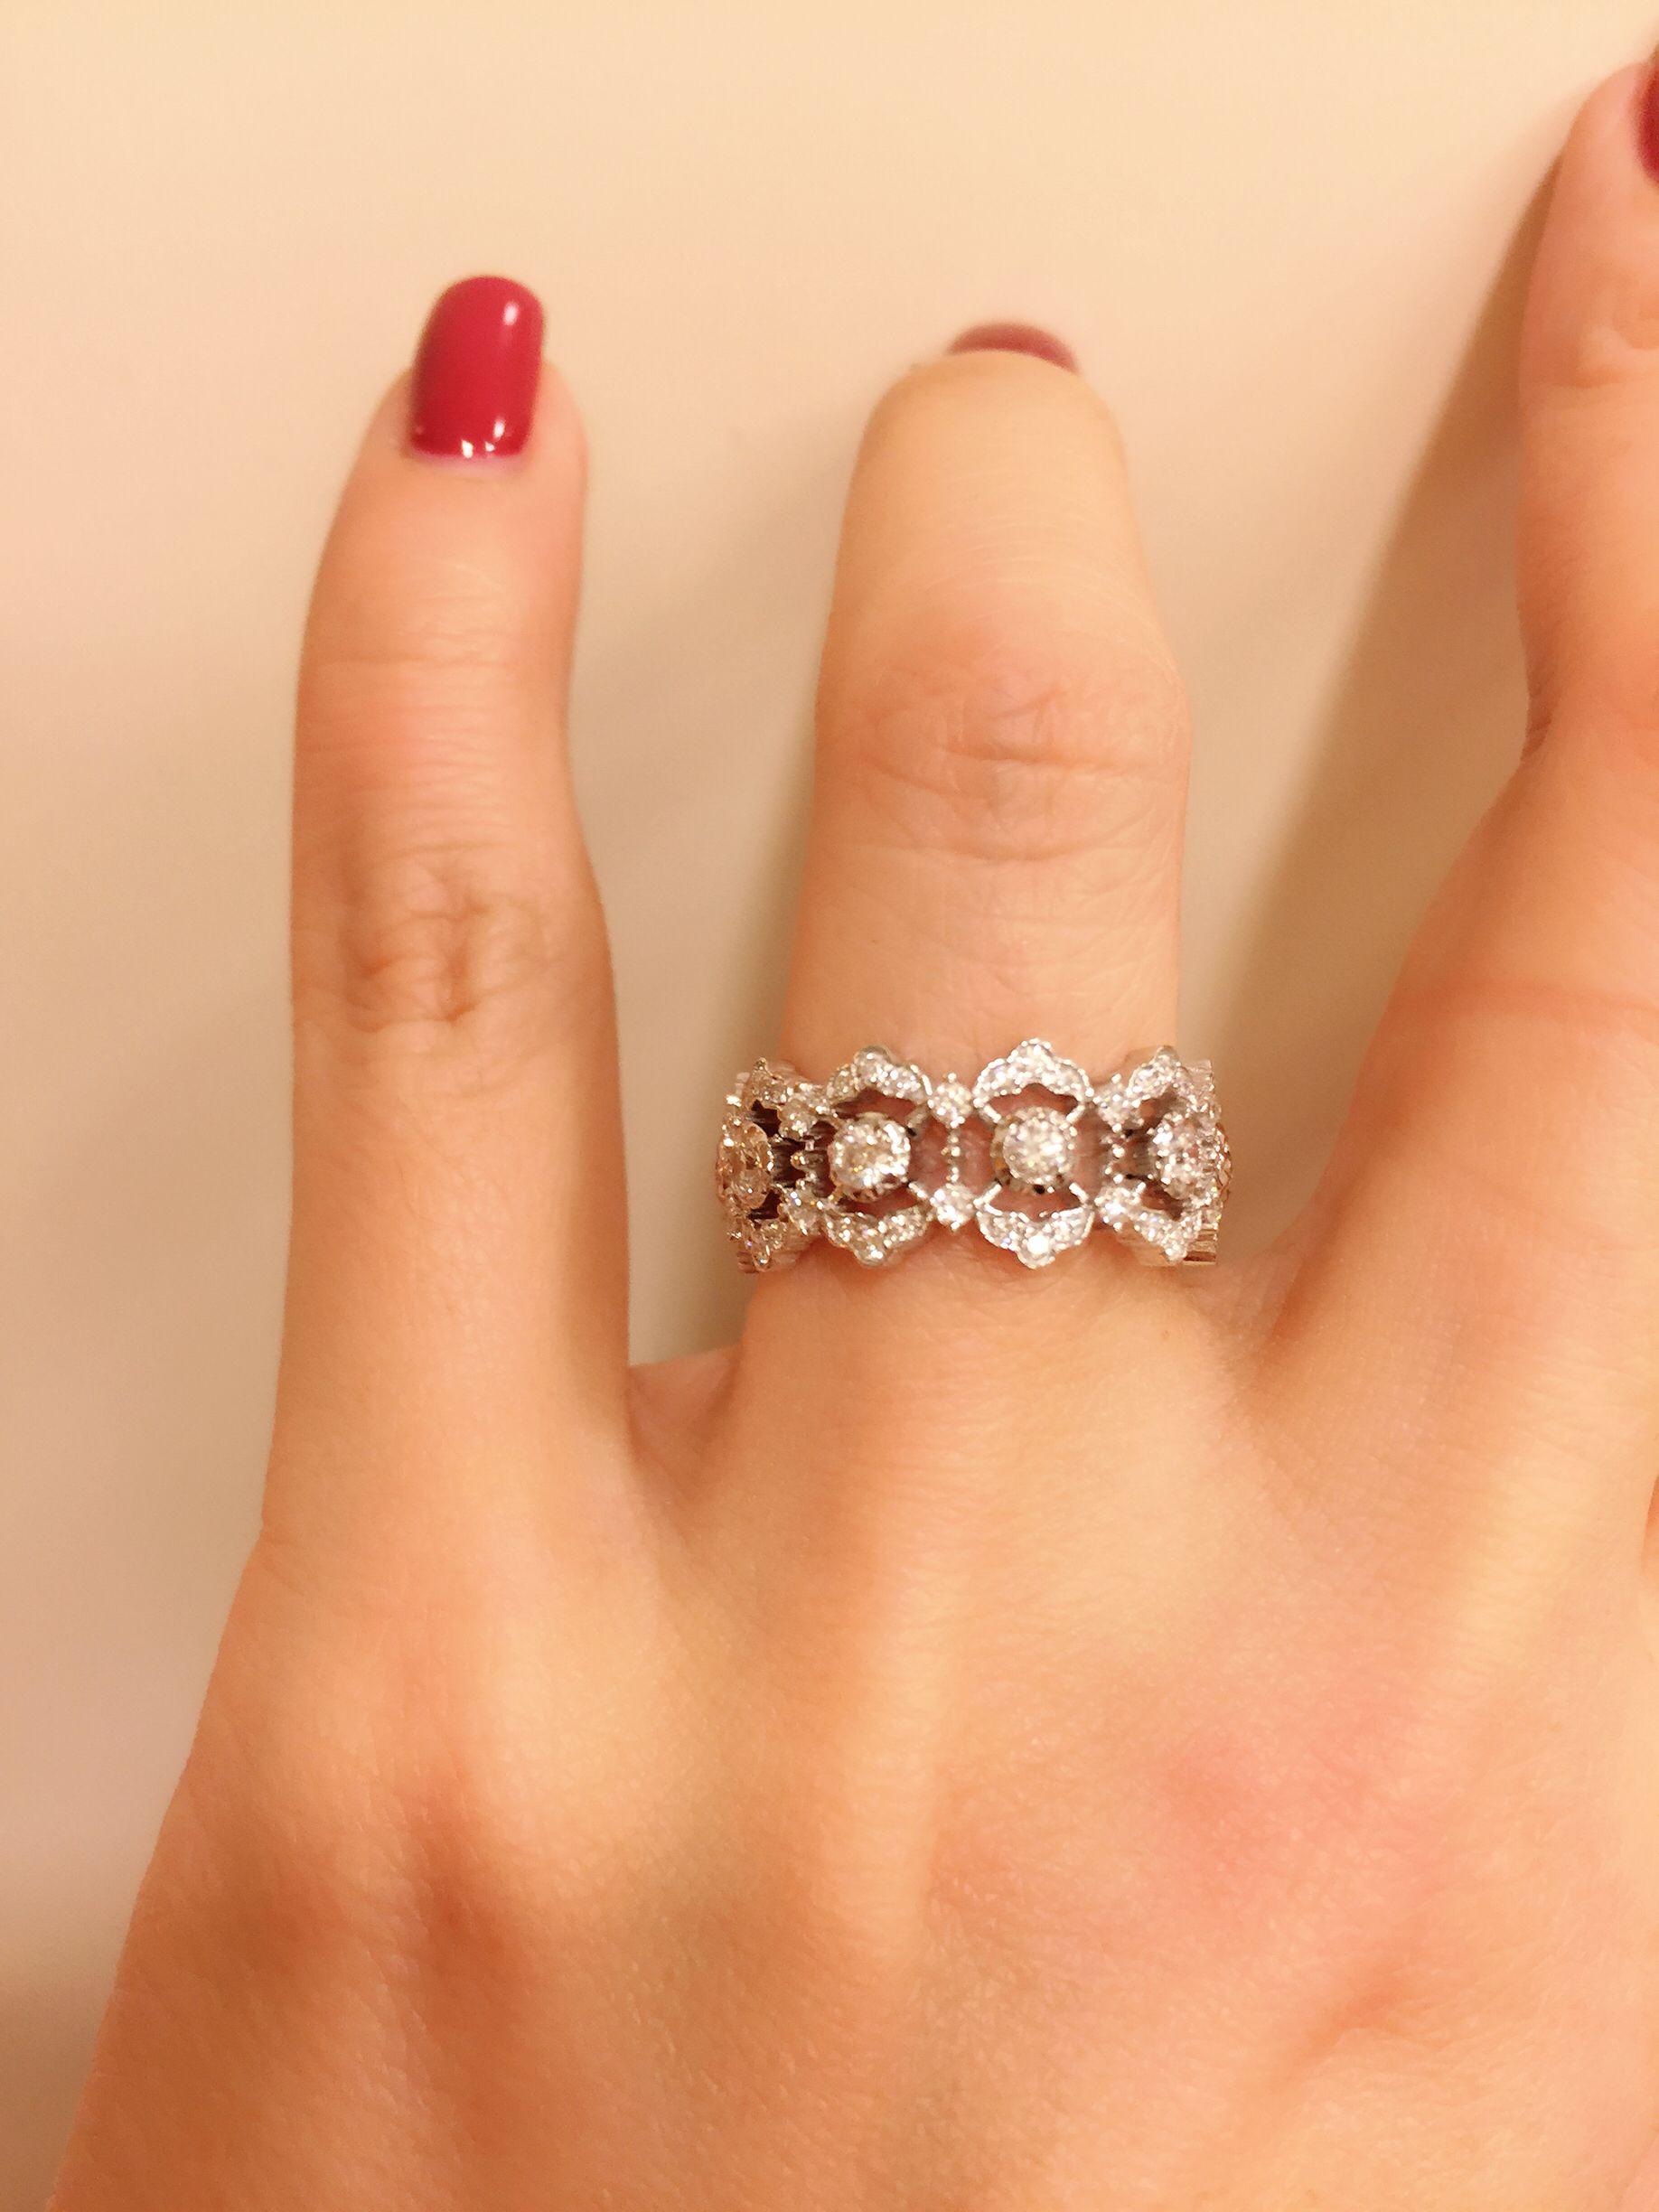 For the right hand | Ring | Wedding Rings, Engagement Rings, Rings